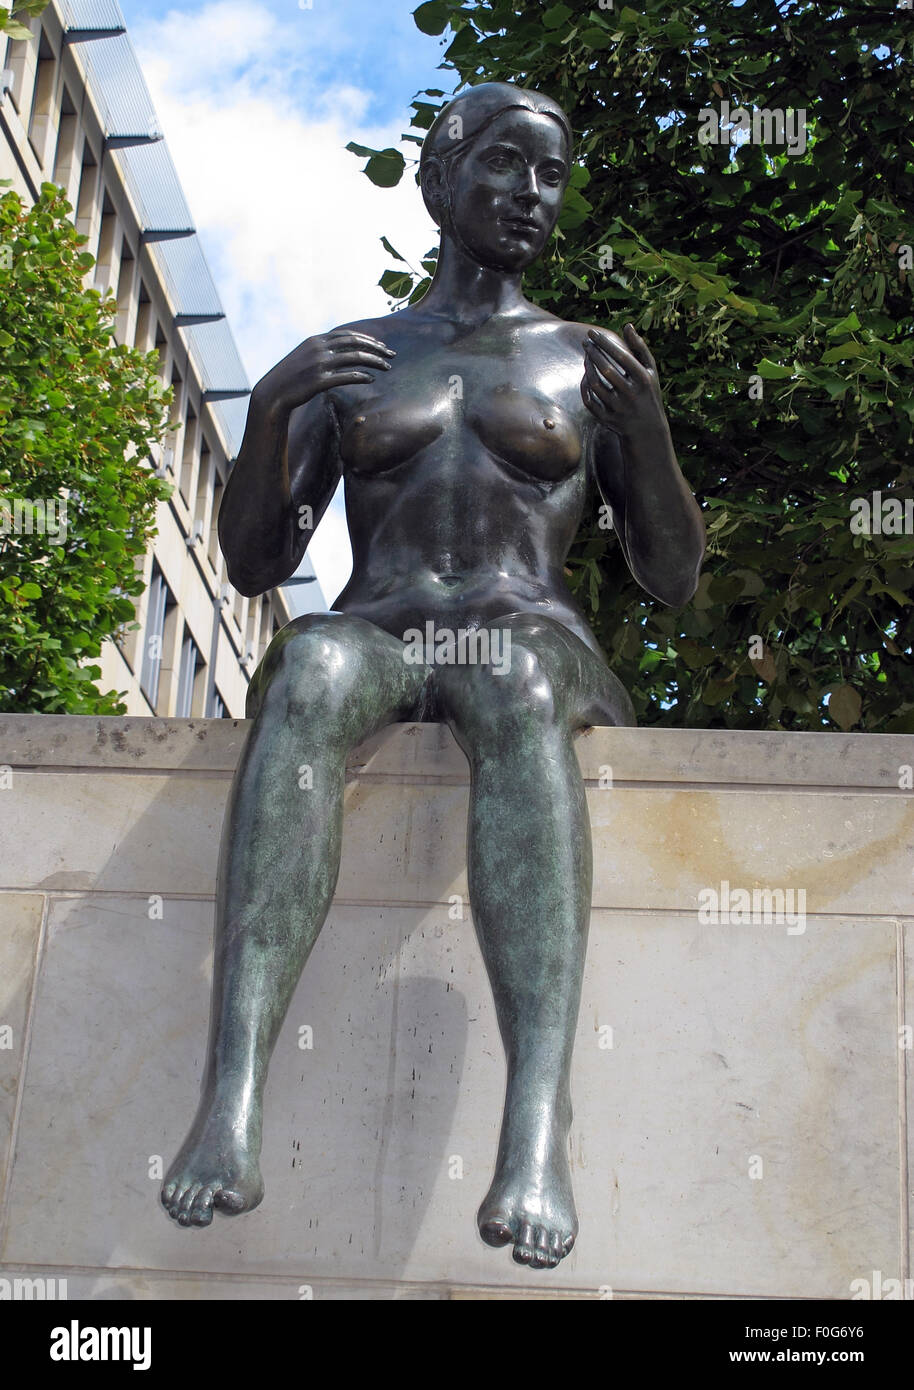 3,Statue,by,the,Spree,River,Moabit,Berlin,Germany,bronze,bank,side,of,art,artist,public,publicart,German,sculptor,DomAquarée,DomAquaree,summer,sunny,bright,city,cities,culture,front,view,frontal,GoTonySmith,Buy Pictures of,Buy Images Of